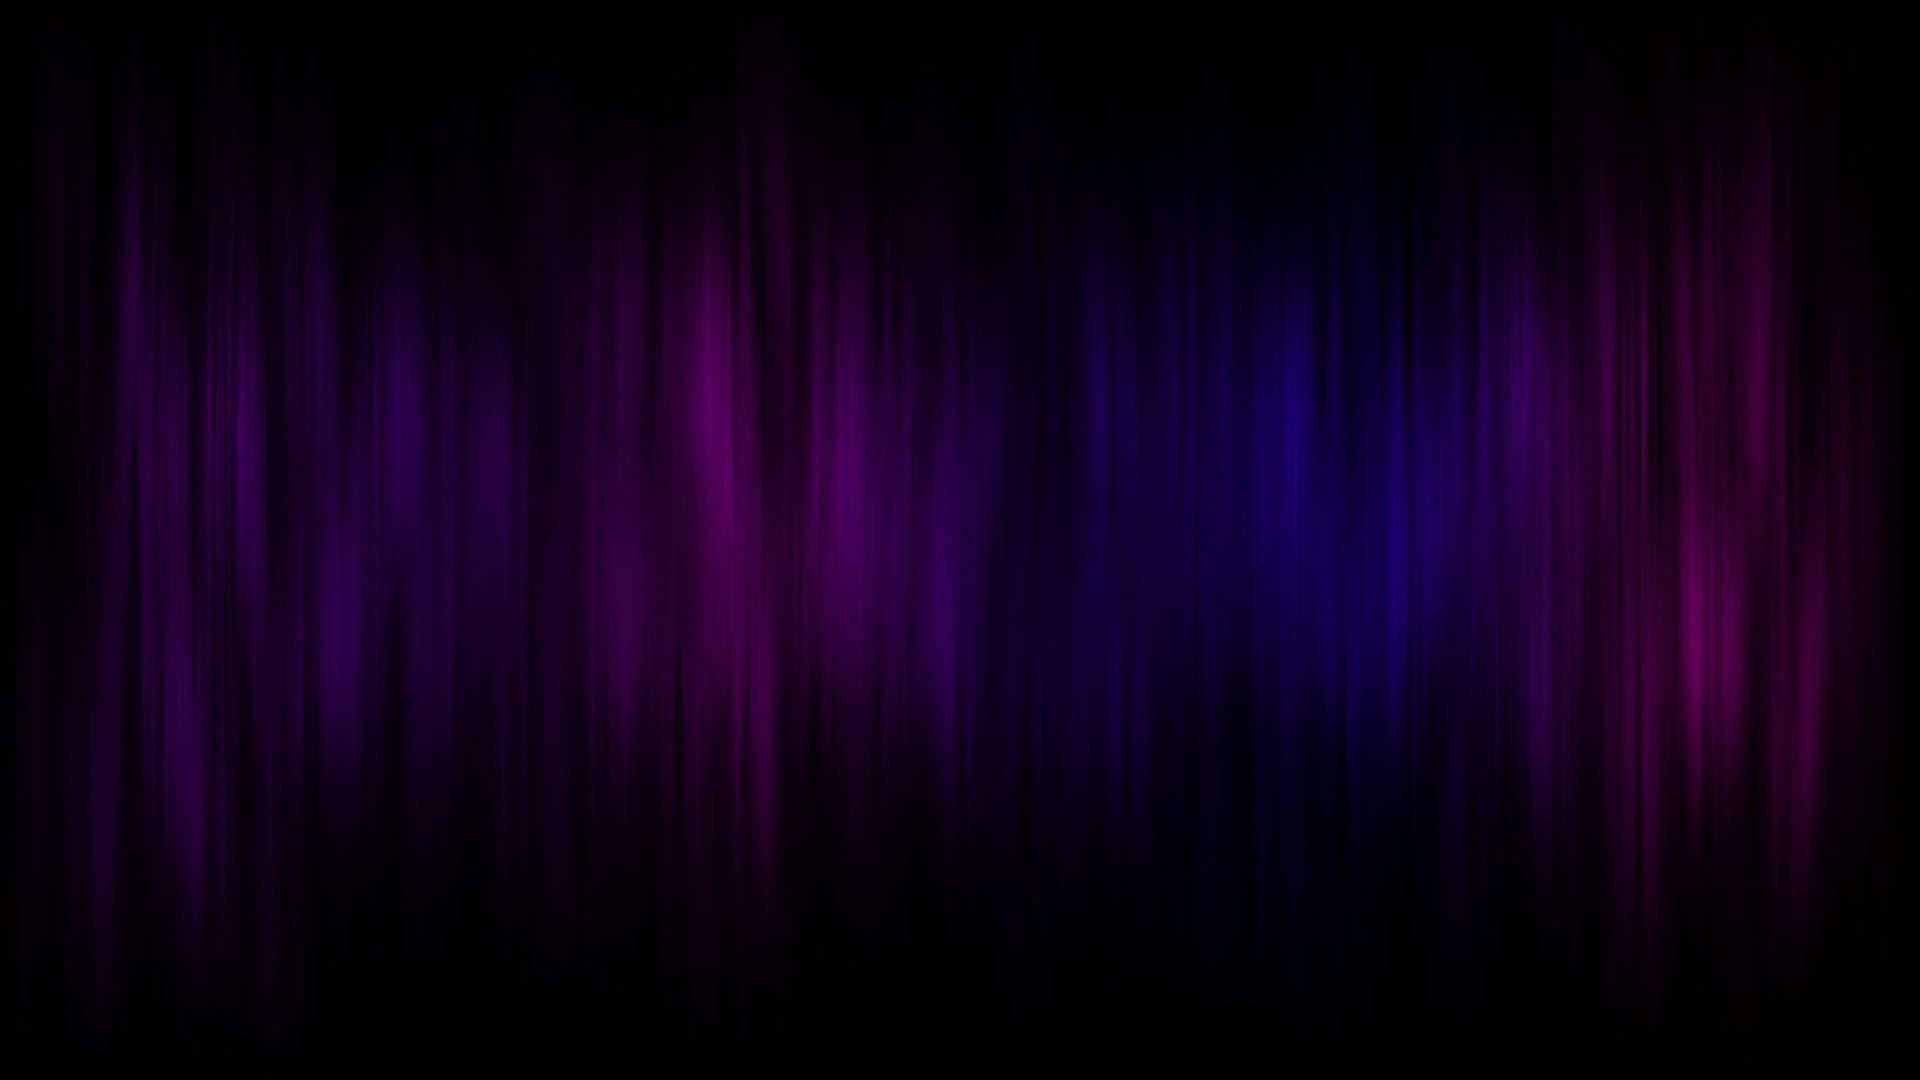 Free Download Black And Purple Abstract Wallpapers Top Black And